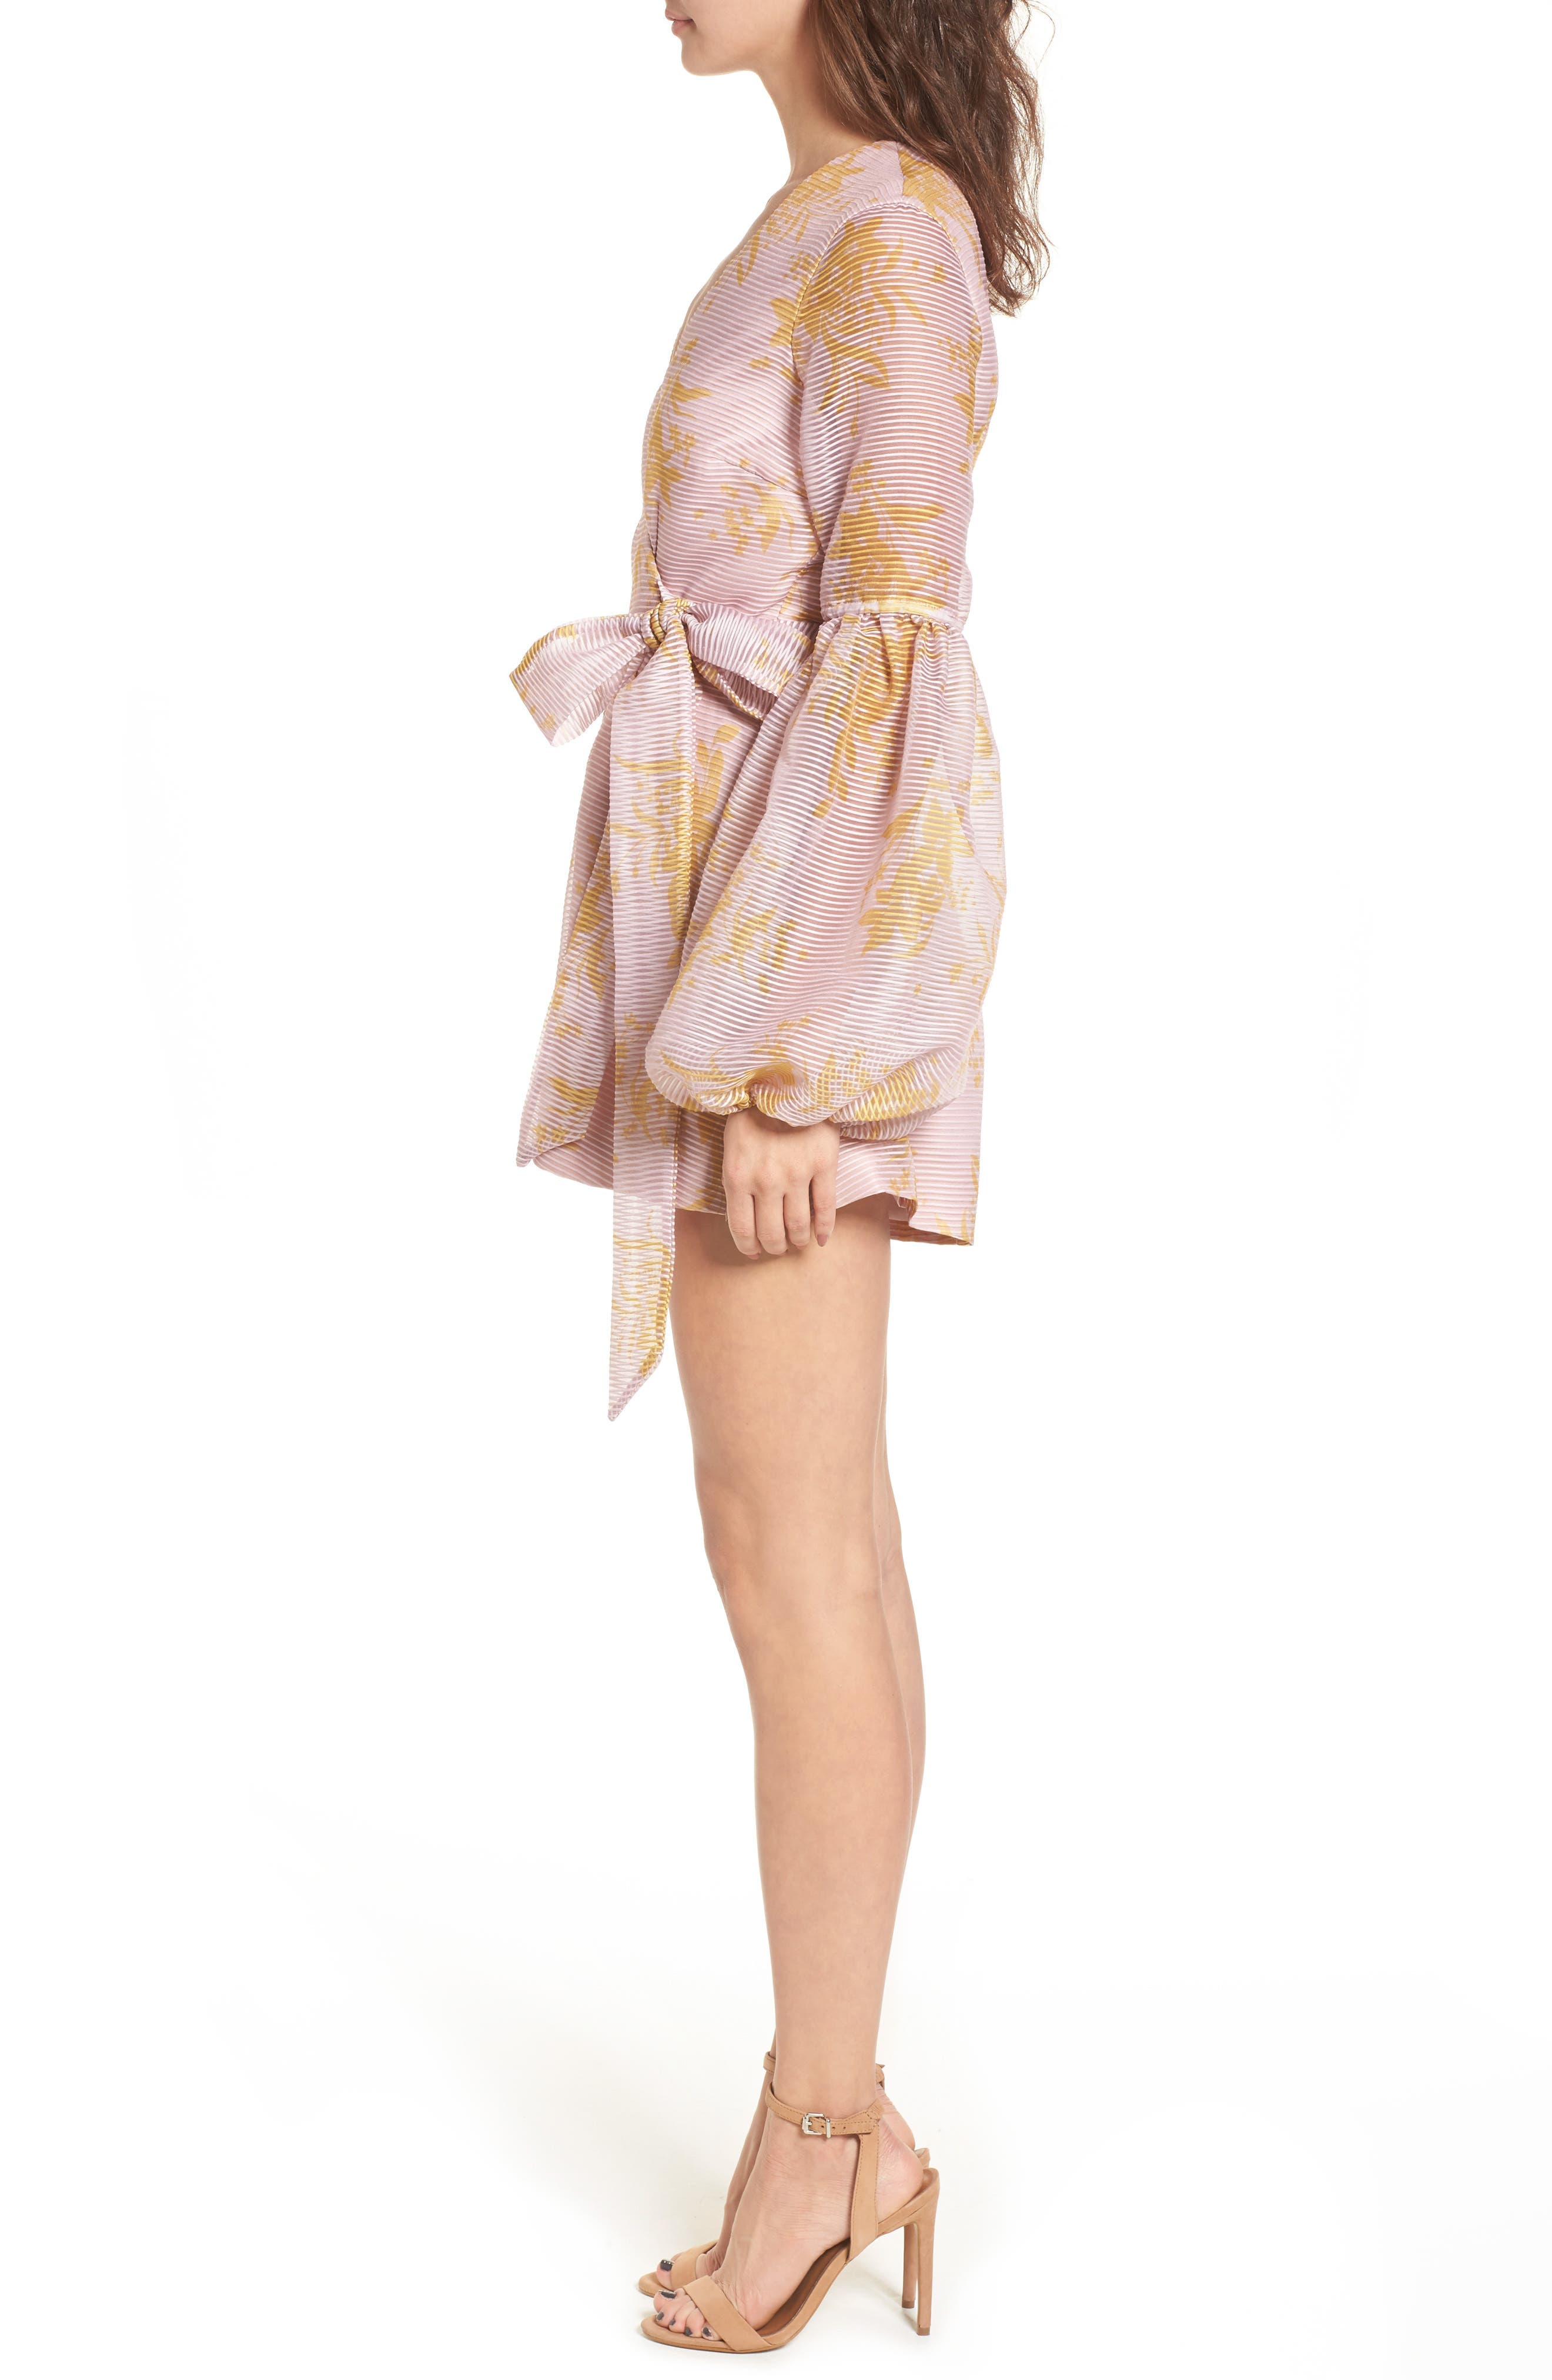 Stand Tall Romper,                             Alternate thumbnail 3, color,                             650